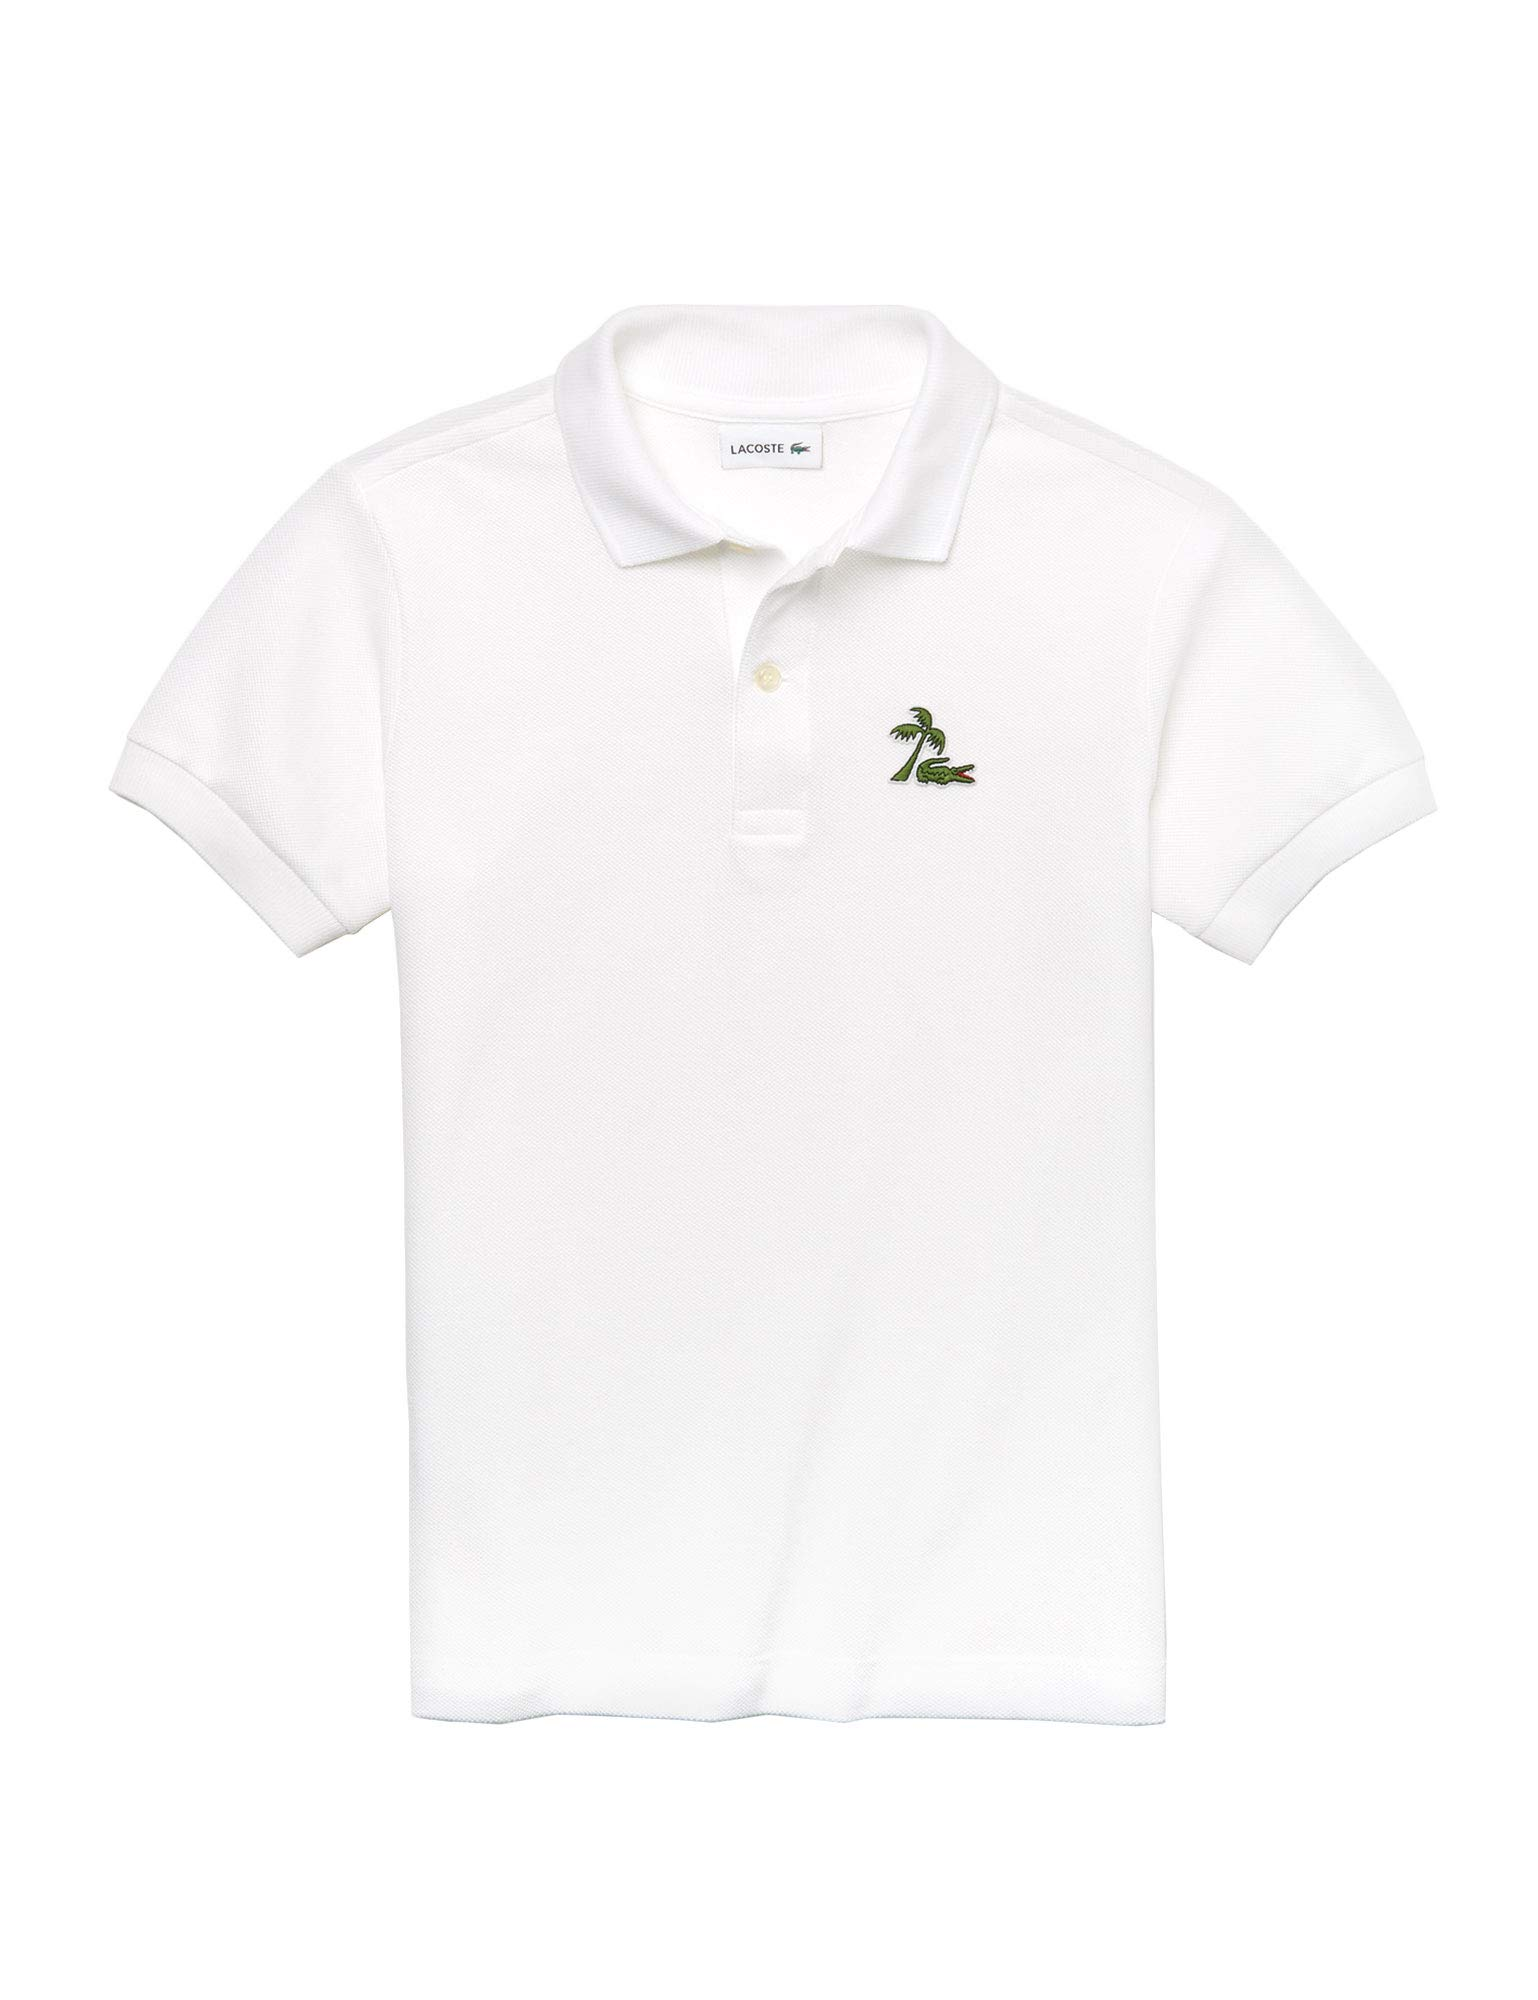 Lacoste Kids Palm Tree Croc Polo T-Shirt White in Size 1 Years (74 cm)